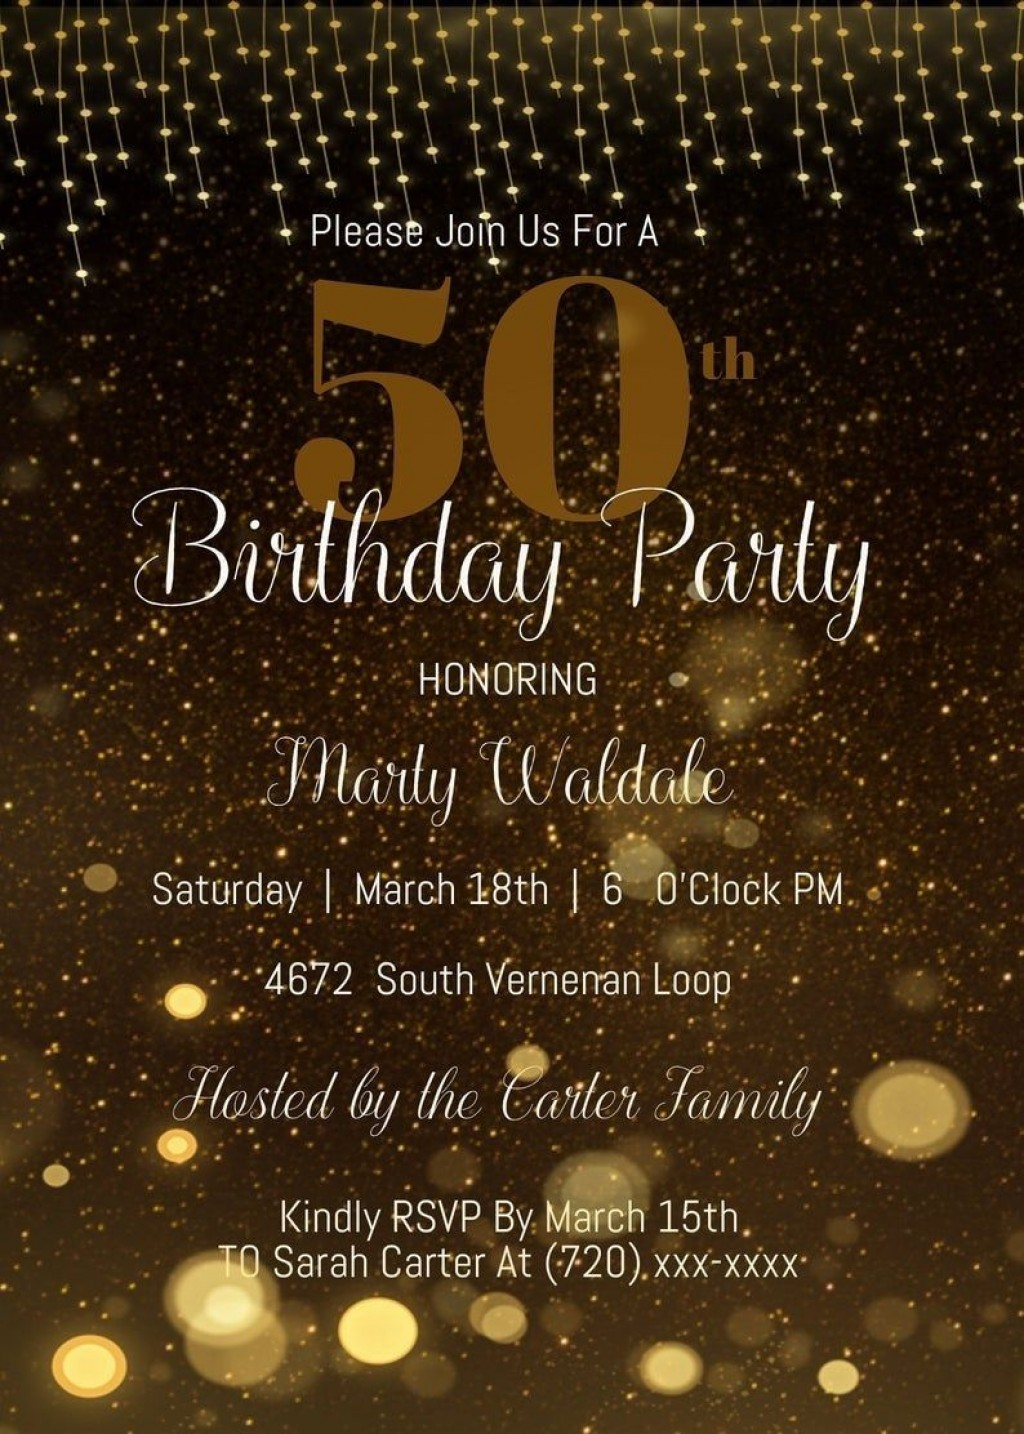 005 Formidable 50th Birthday Invitation Template High Resolution  For Him Microsoft Word FreeLarge